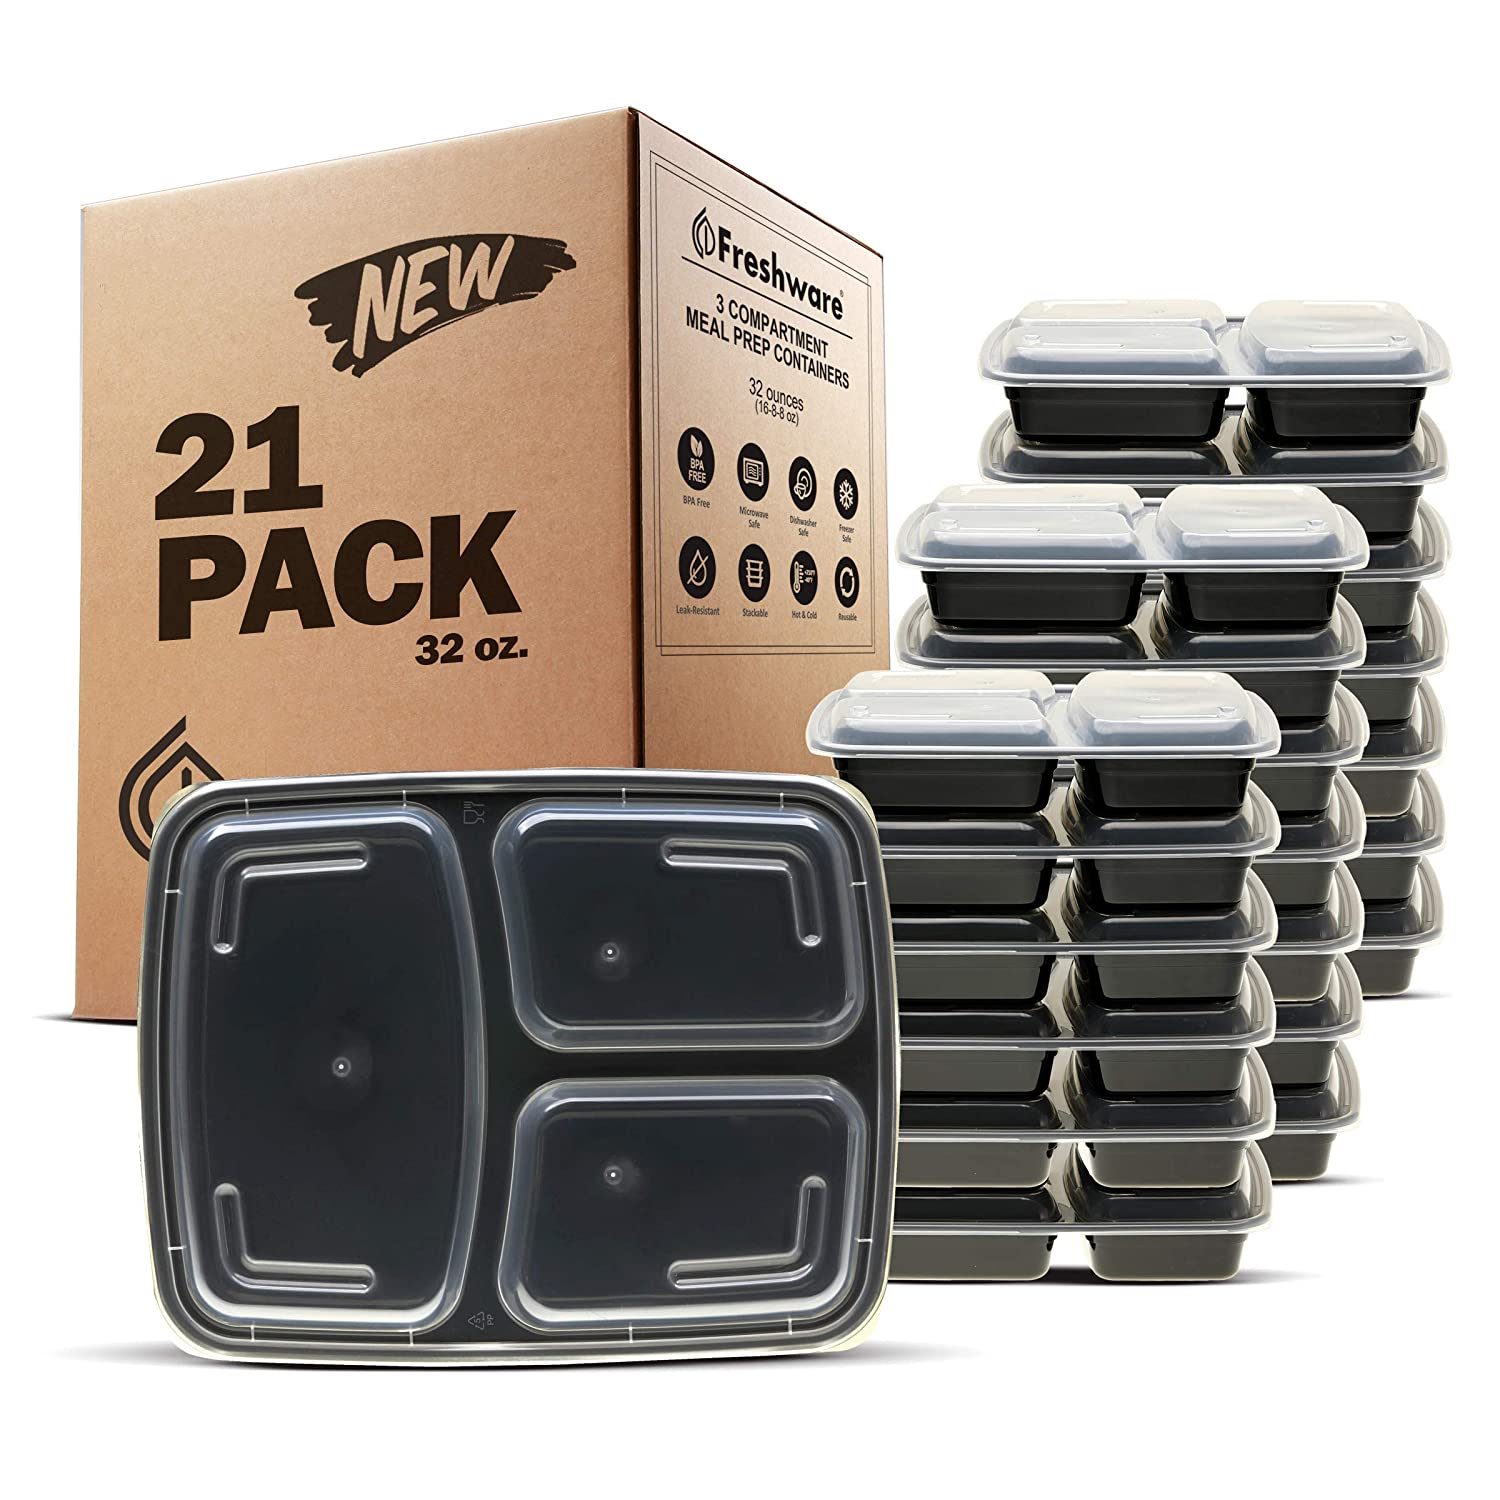 Freshware Meal Prep Containers [21 Pack] 3 Compartment with Lids, Food Storage Containers, Bento Box | BPA Free | Stackable | Microwave/Dishwasher/Freezer Safe, Portion Control, 21 Day Fix (32 oz)